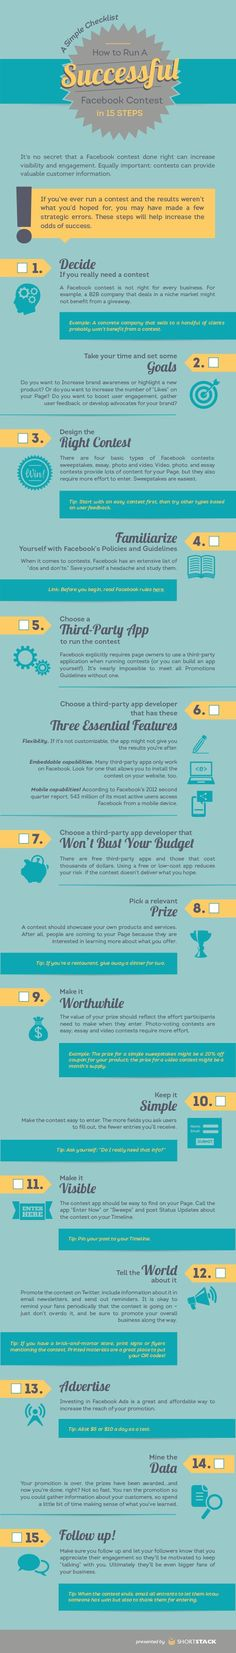 How To Run A Facebook Contest - INFOGRAPHIC